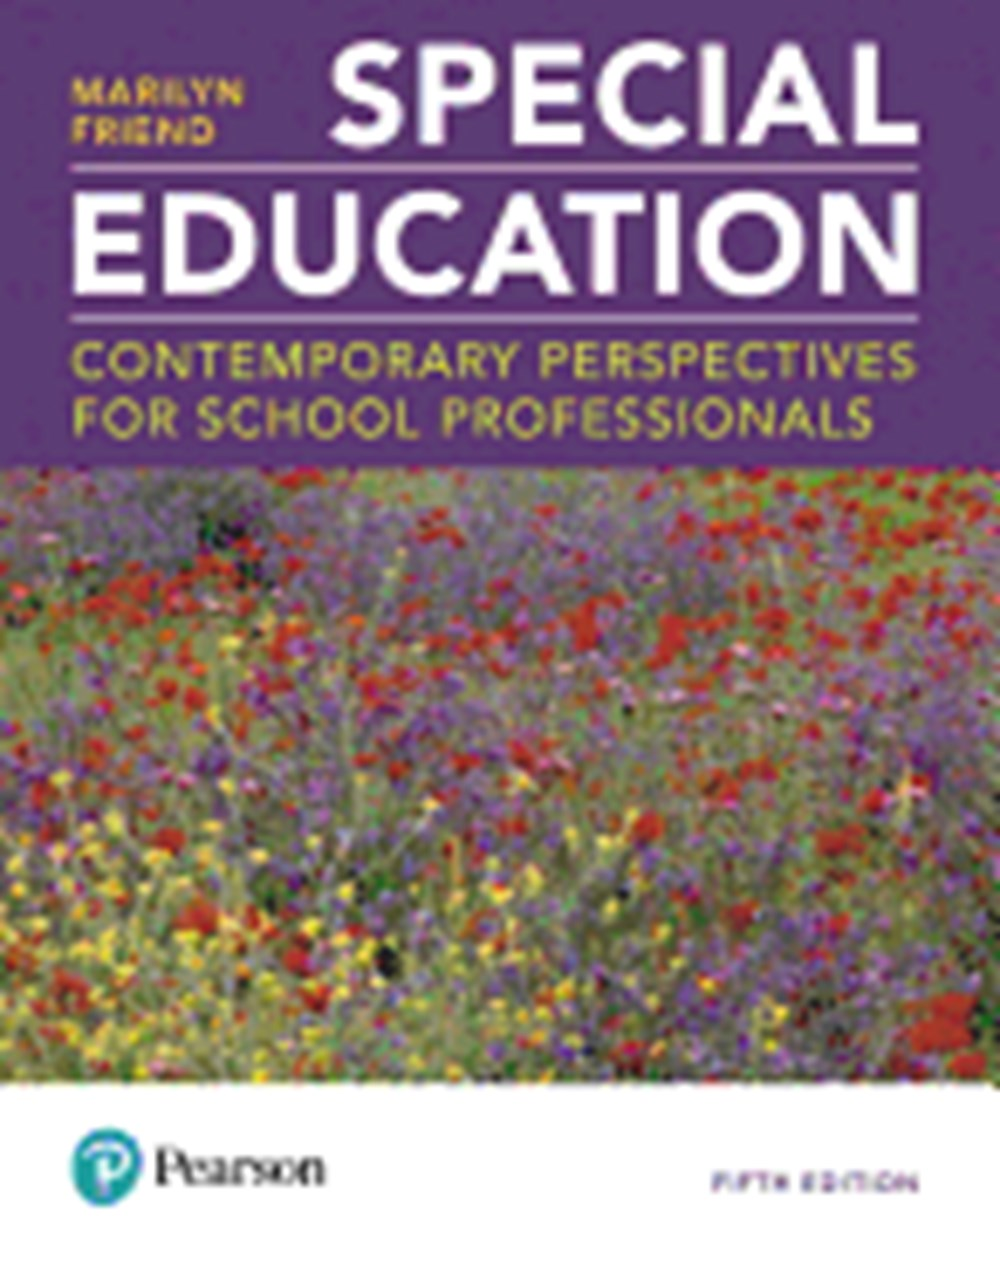 Special Education Contemporary Perspectives for School Professionals Plus Myeducationlab with Enhanc